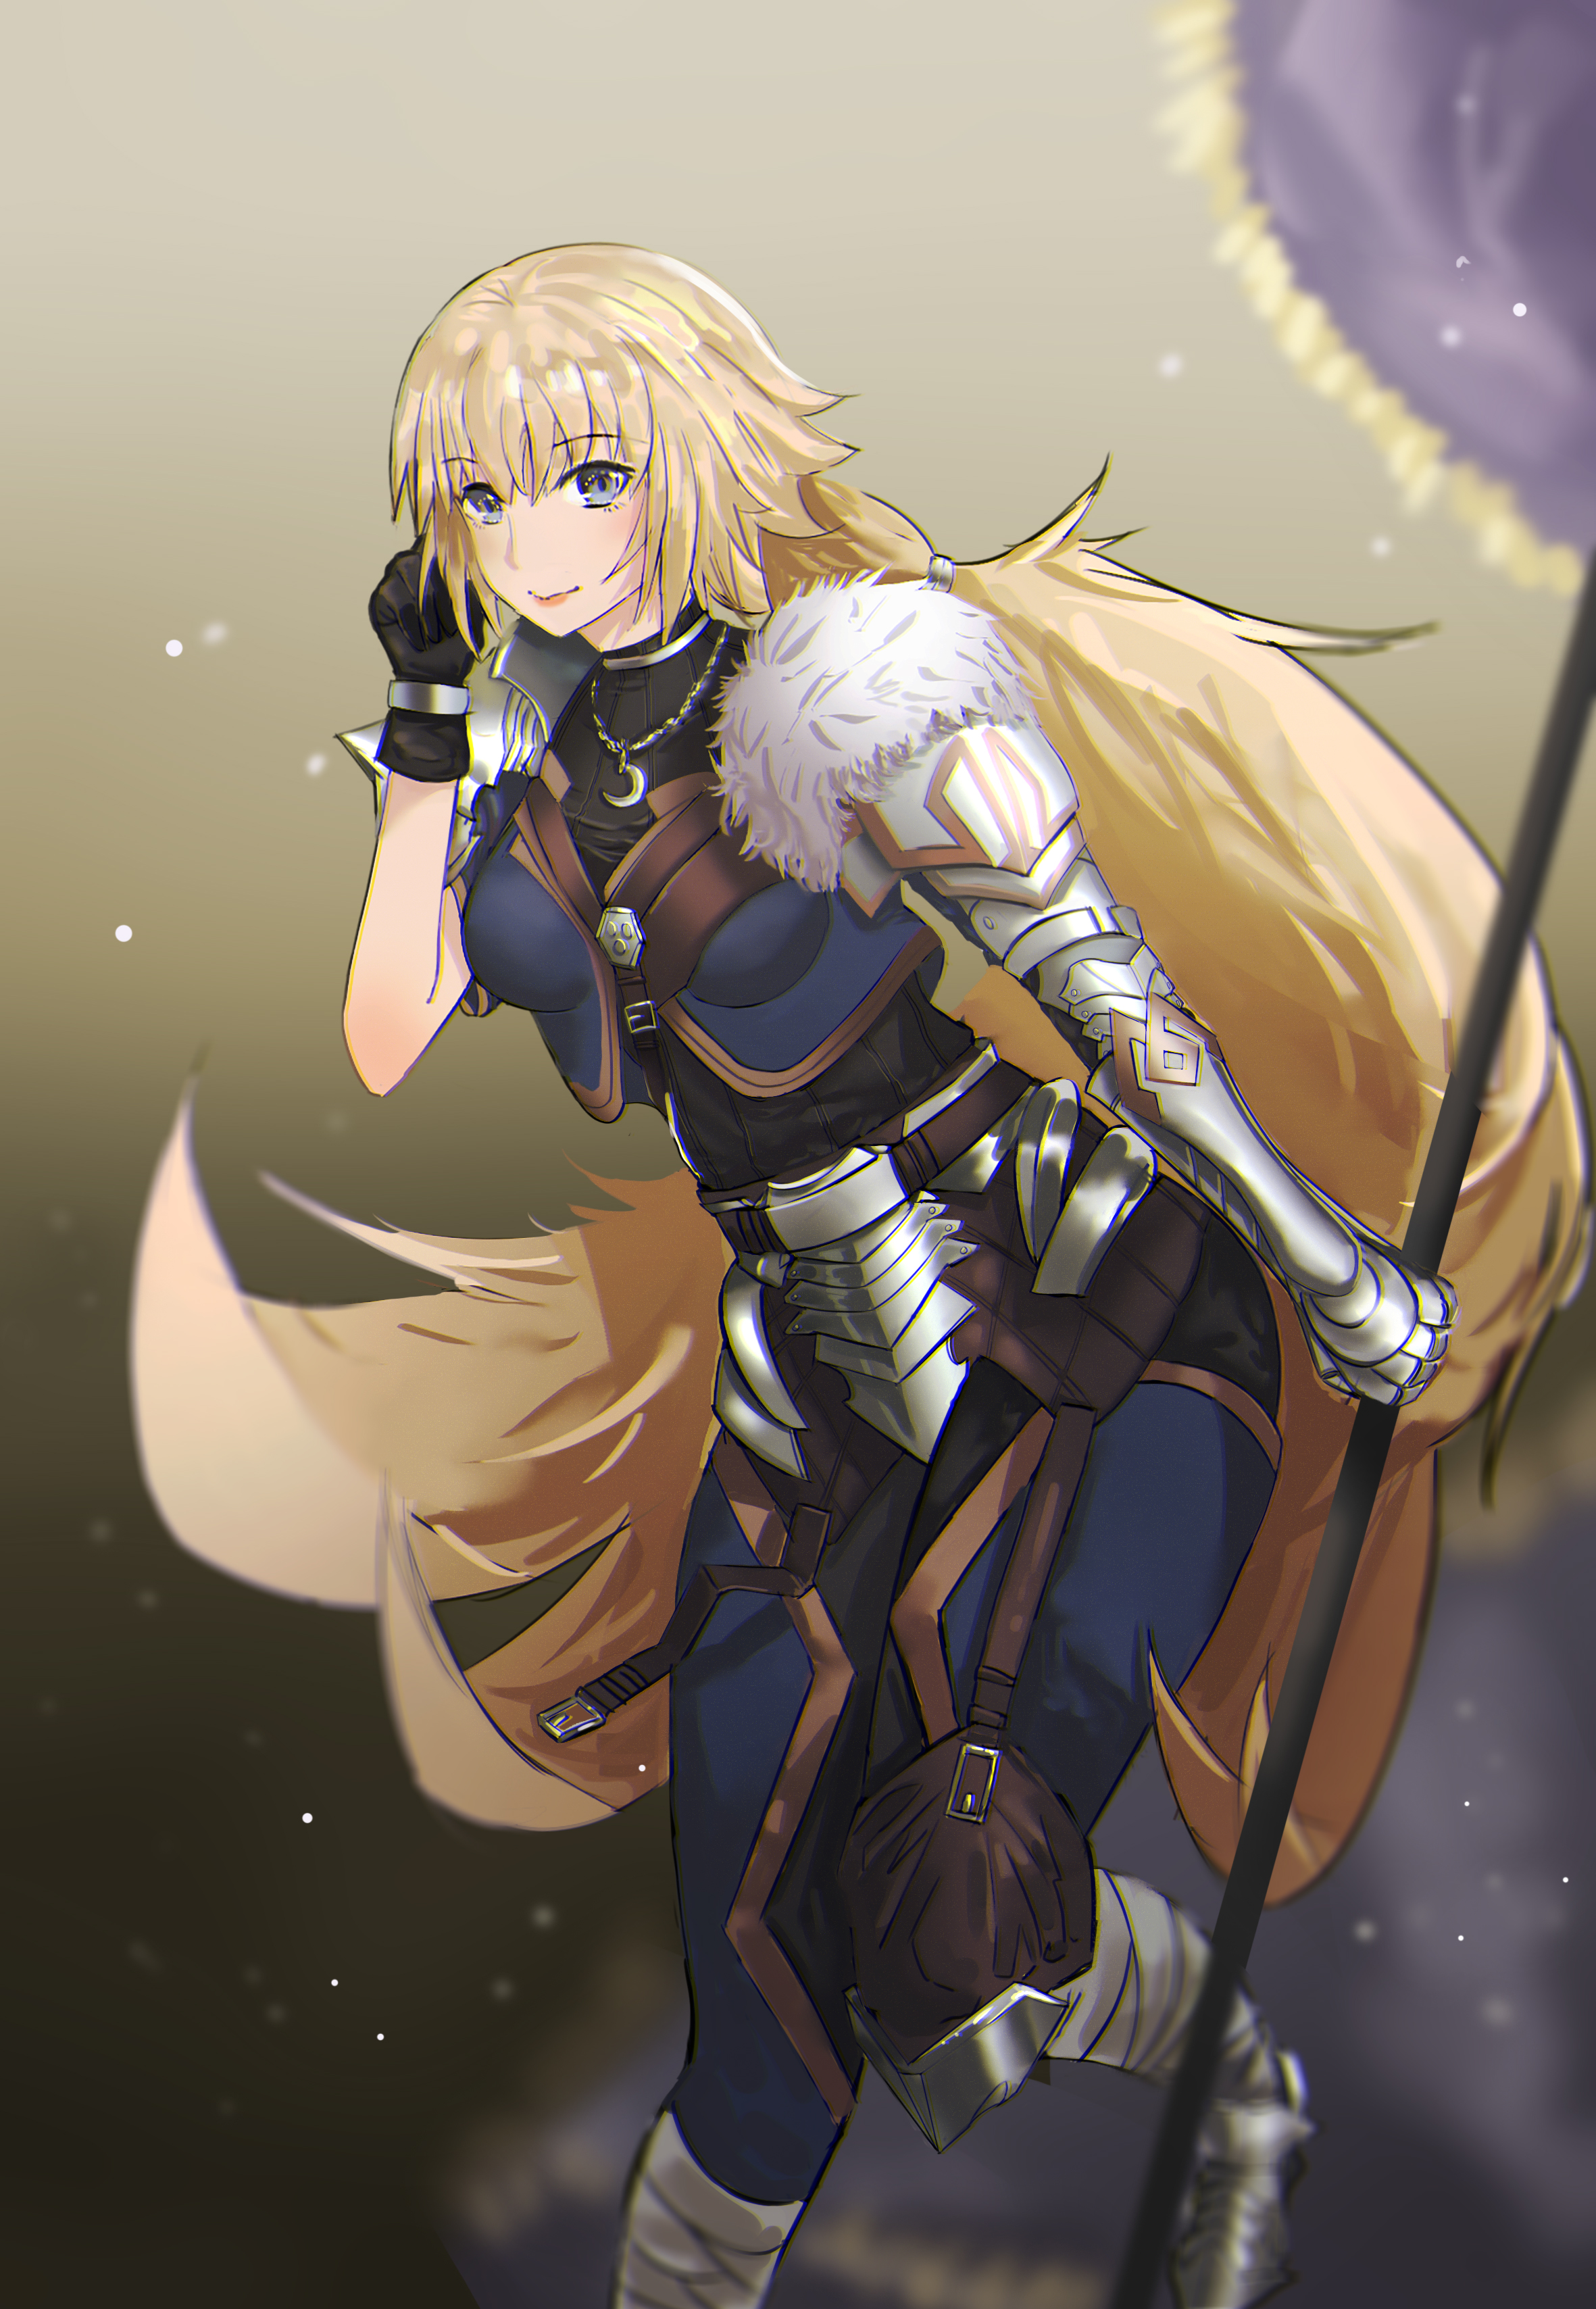 Anime 2362x3417 Fate Series Fate/Apocrypha  anime girls fantasy armor 2D fan art simple background blond hair long hair vertical Ruler (Fate/Apocrypha) Jeanne d'Arc (Fate)